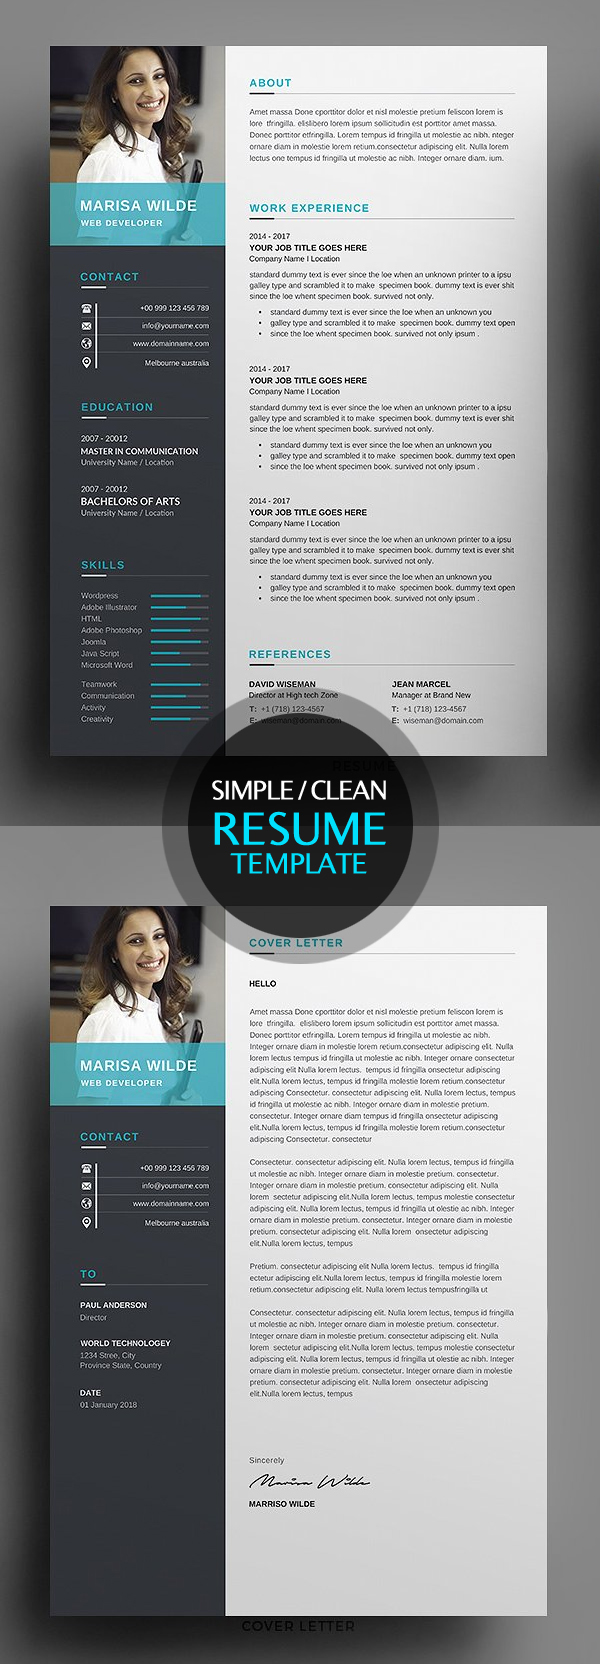 Clean Resume/CV Template 2018